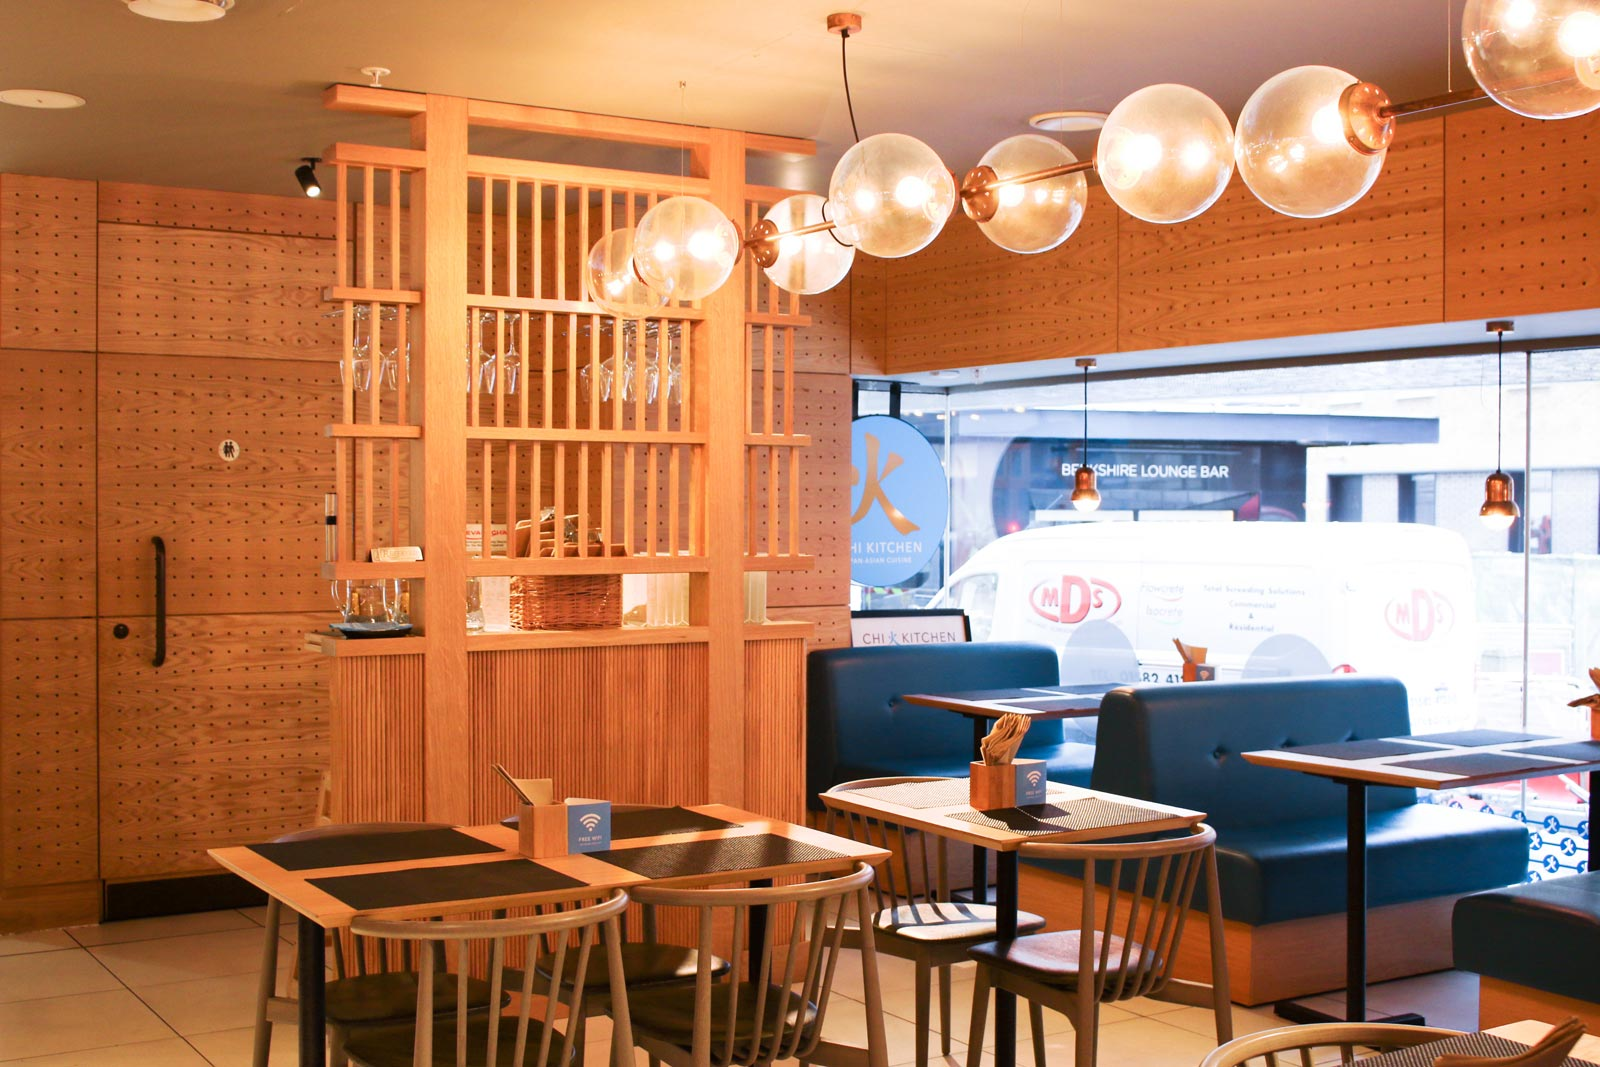 Chi Kitchen is a contemporary pan-Asian restaurant created as an exclusive departmental brand for Debenhams Oxford Street